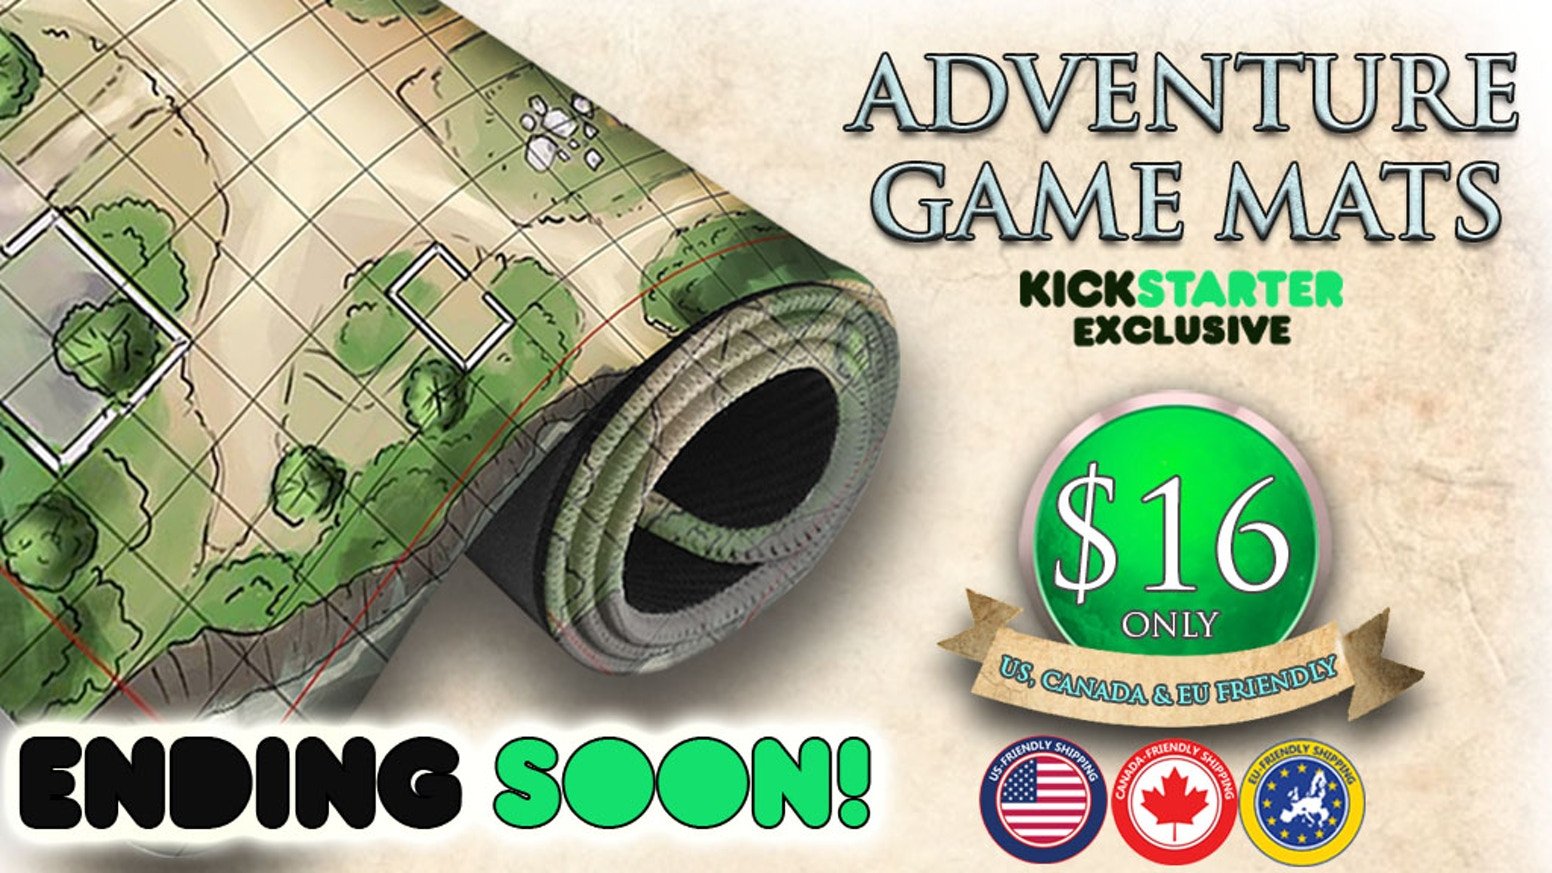 Kickstarter Exclusive: 10 Fantasy designed Adventure game mat that can be used for your campaign or gaming purposes.